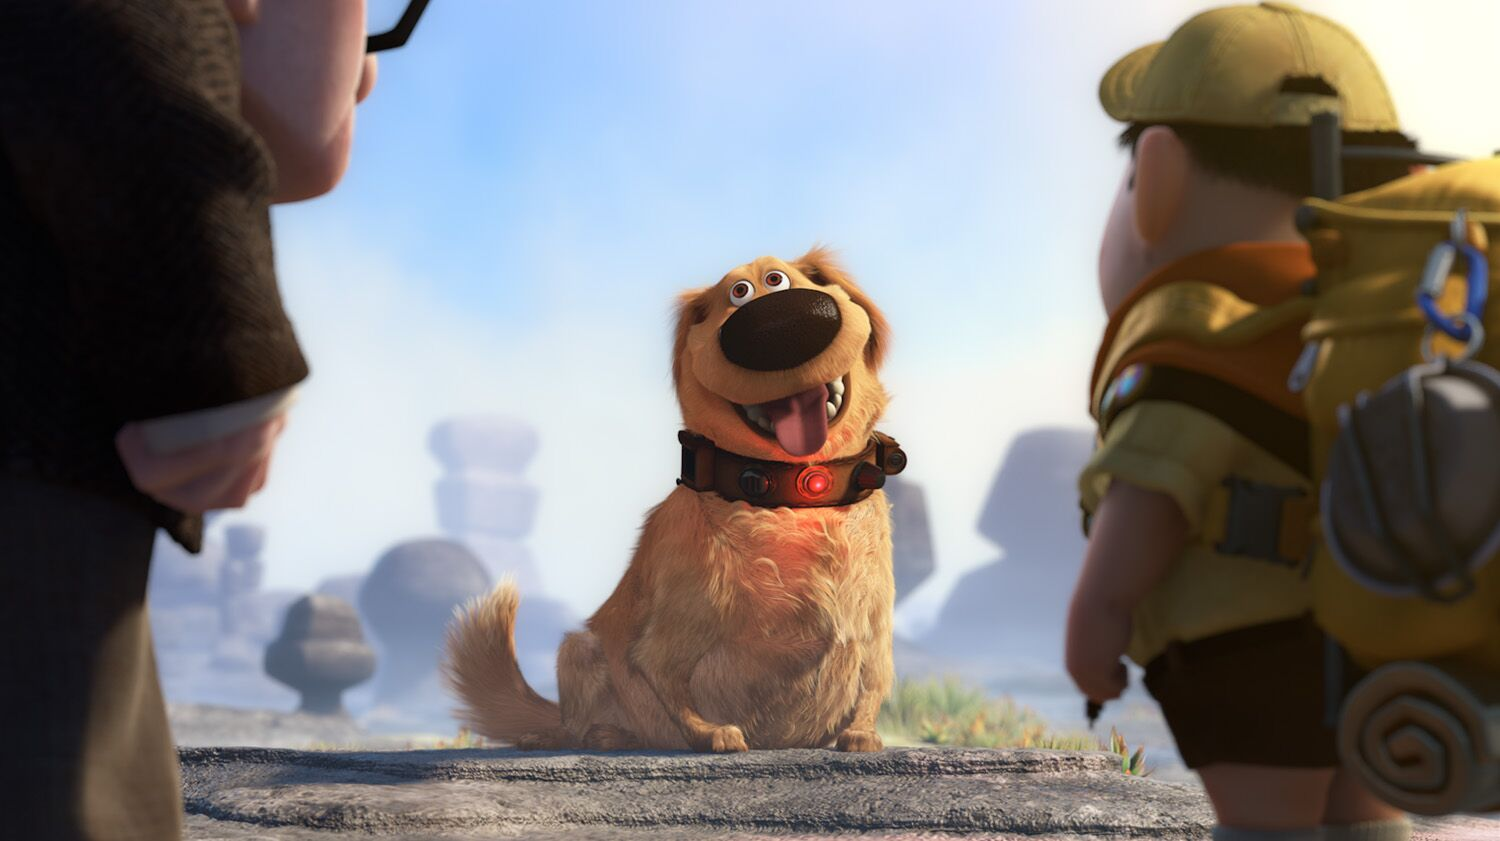 15 of the most memorable and lovable Pixar characters ranked